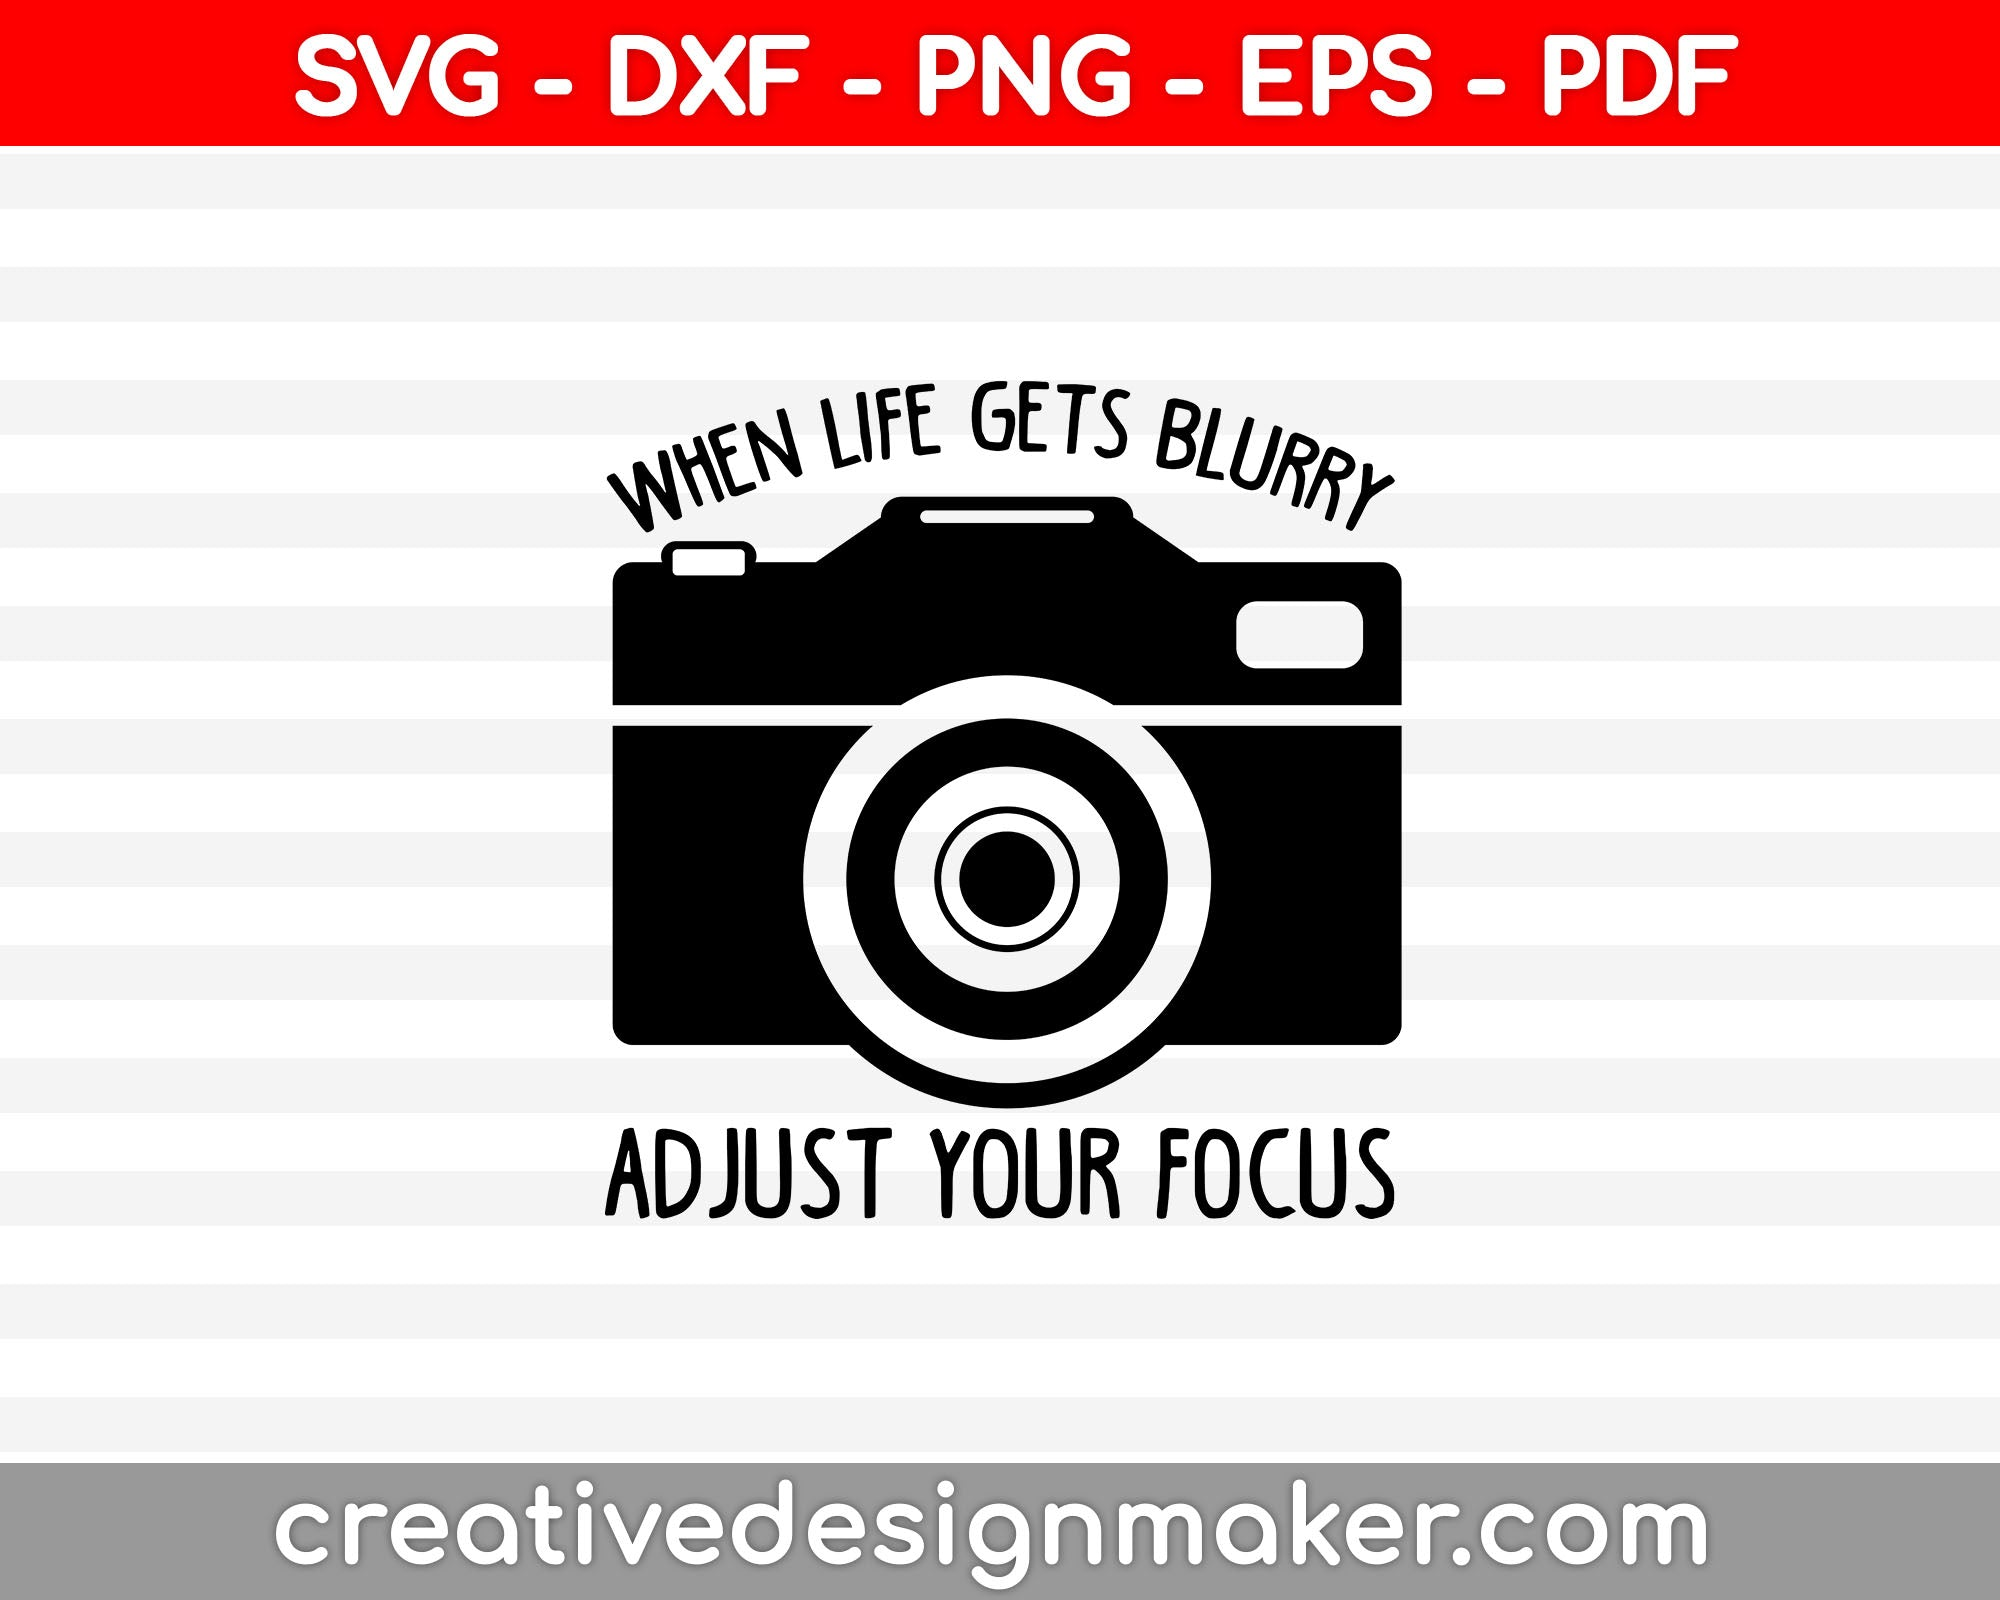 When Life Gets Blurry Adjust Your Focus Svg, Photography Svg Dxf Png Eps Pdf Printable Files